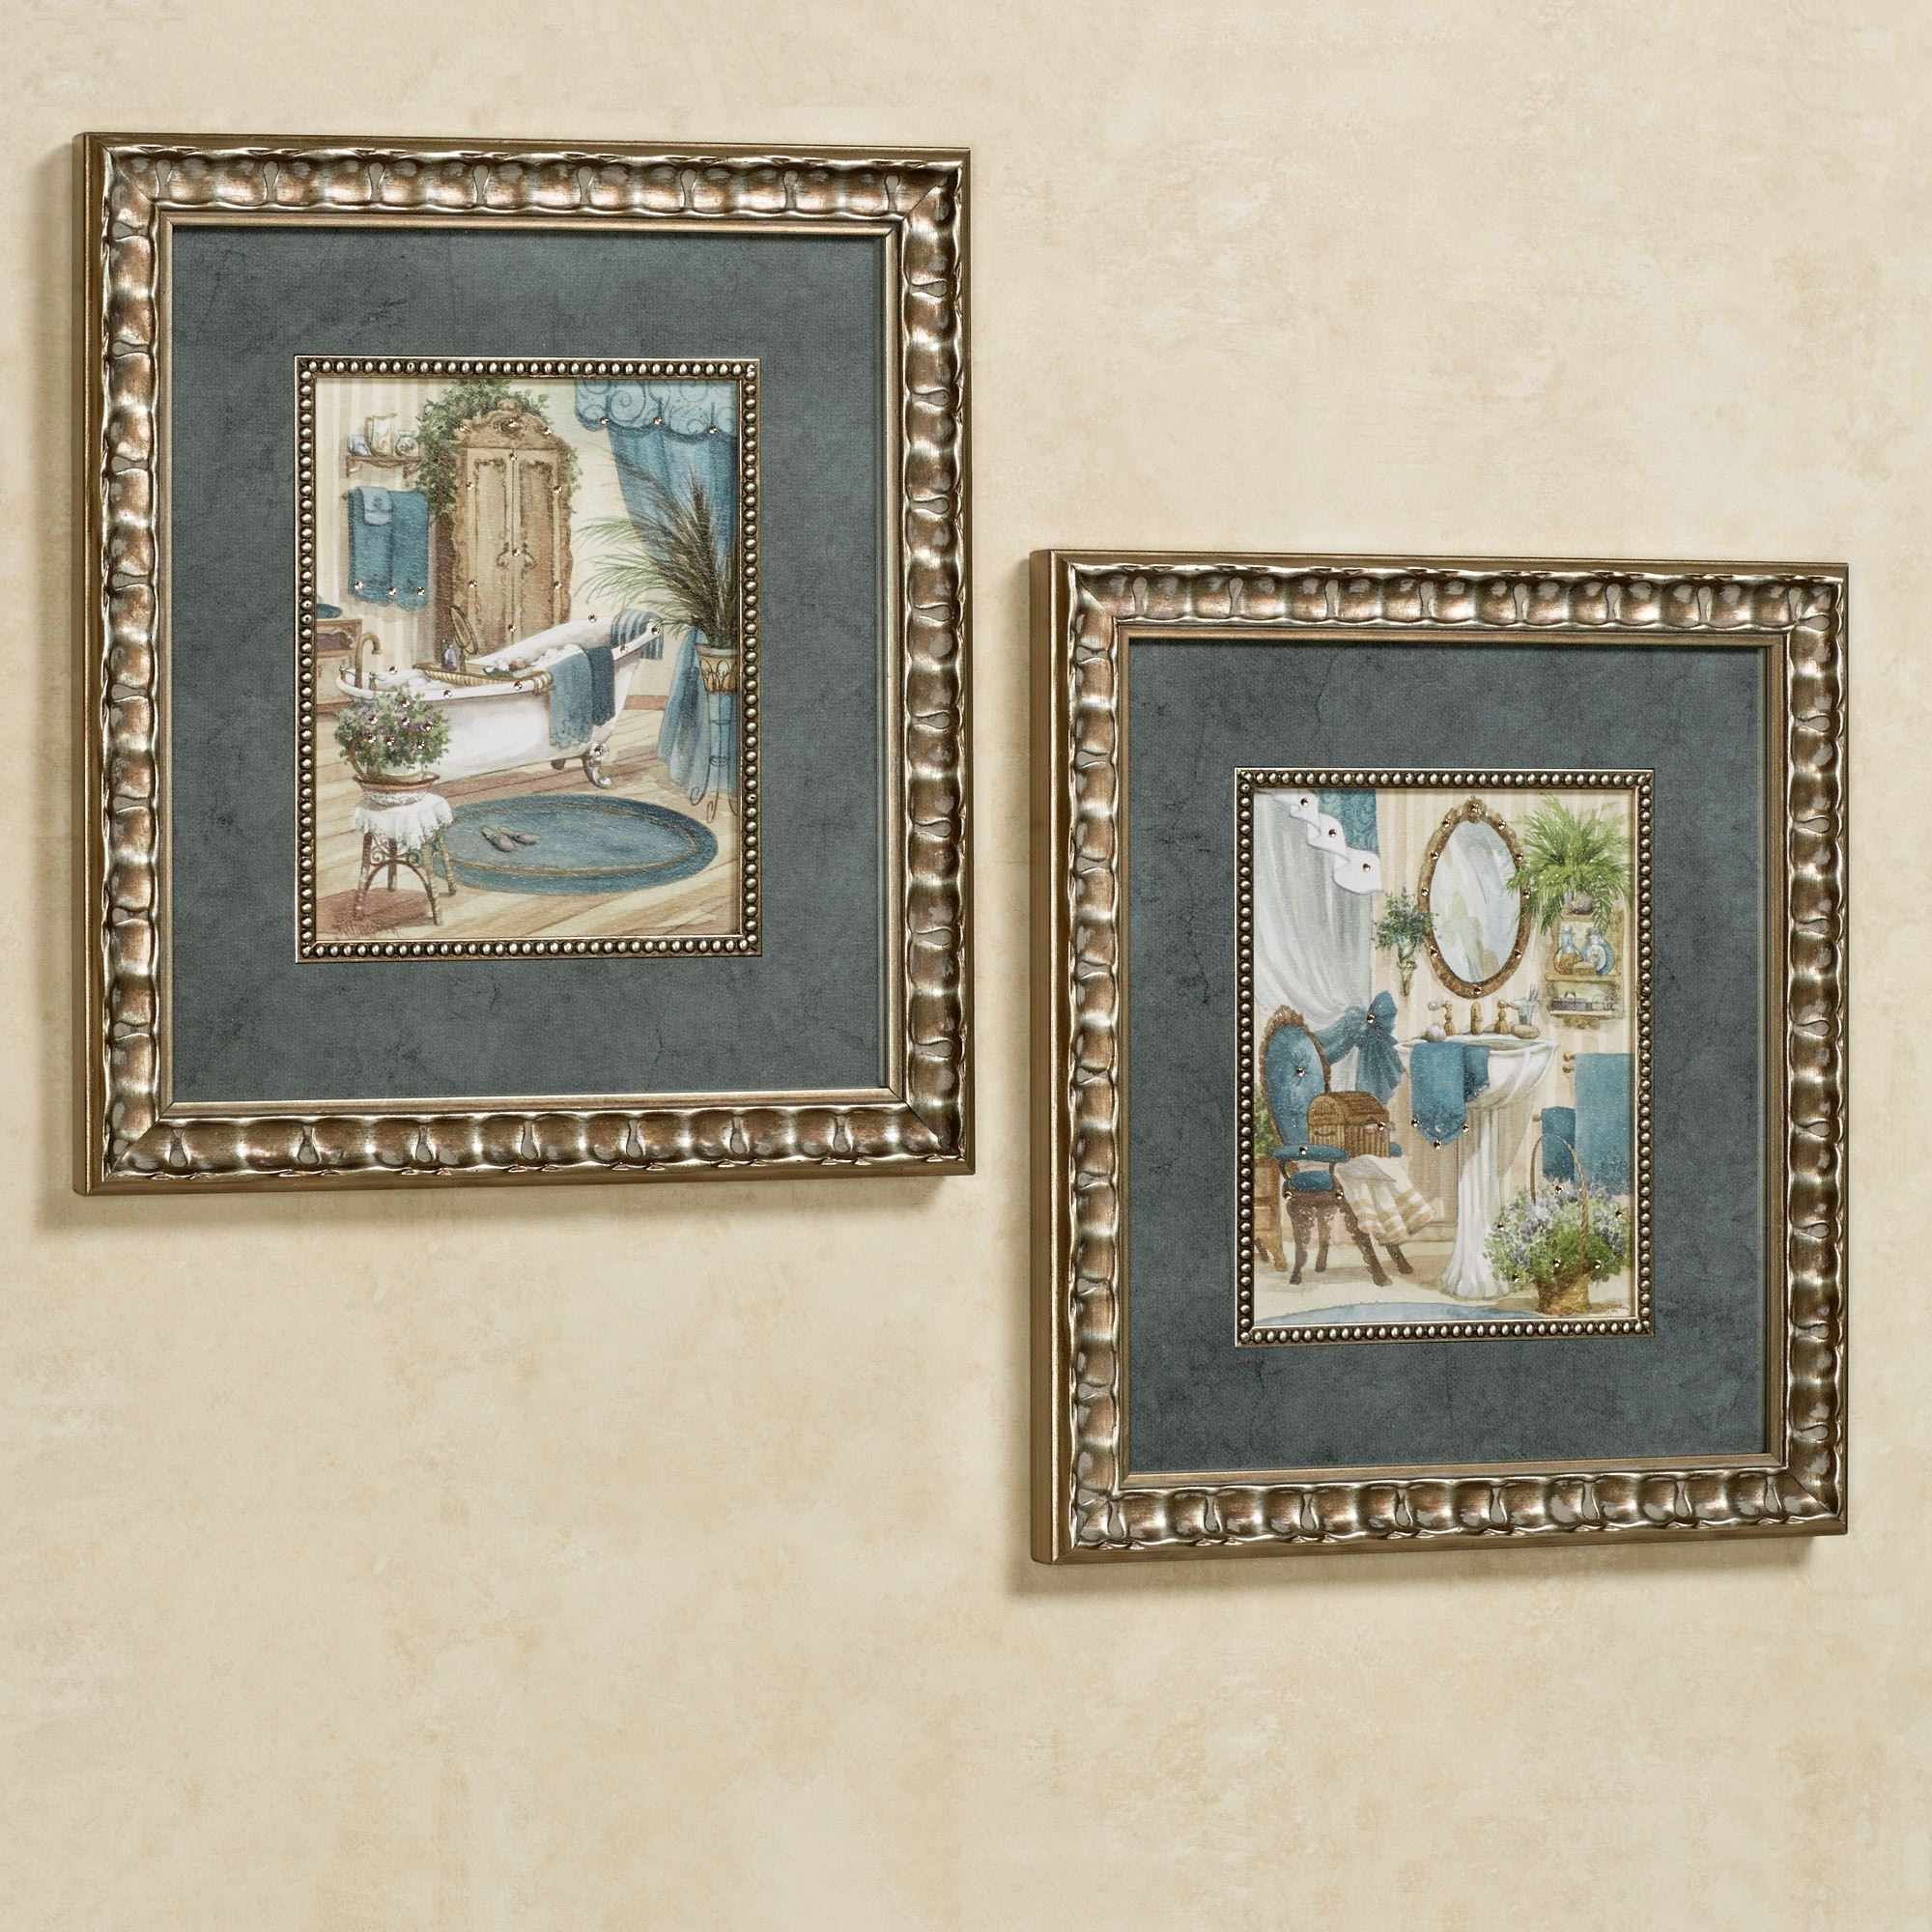 Framed Art Prints Pertaining To Most Up To Date Victorian Bath Framed Wall Art (View 8 of 15)